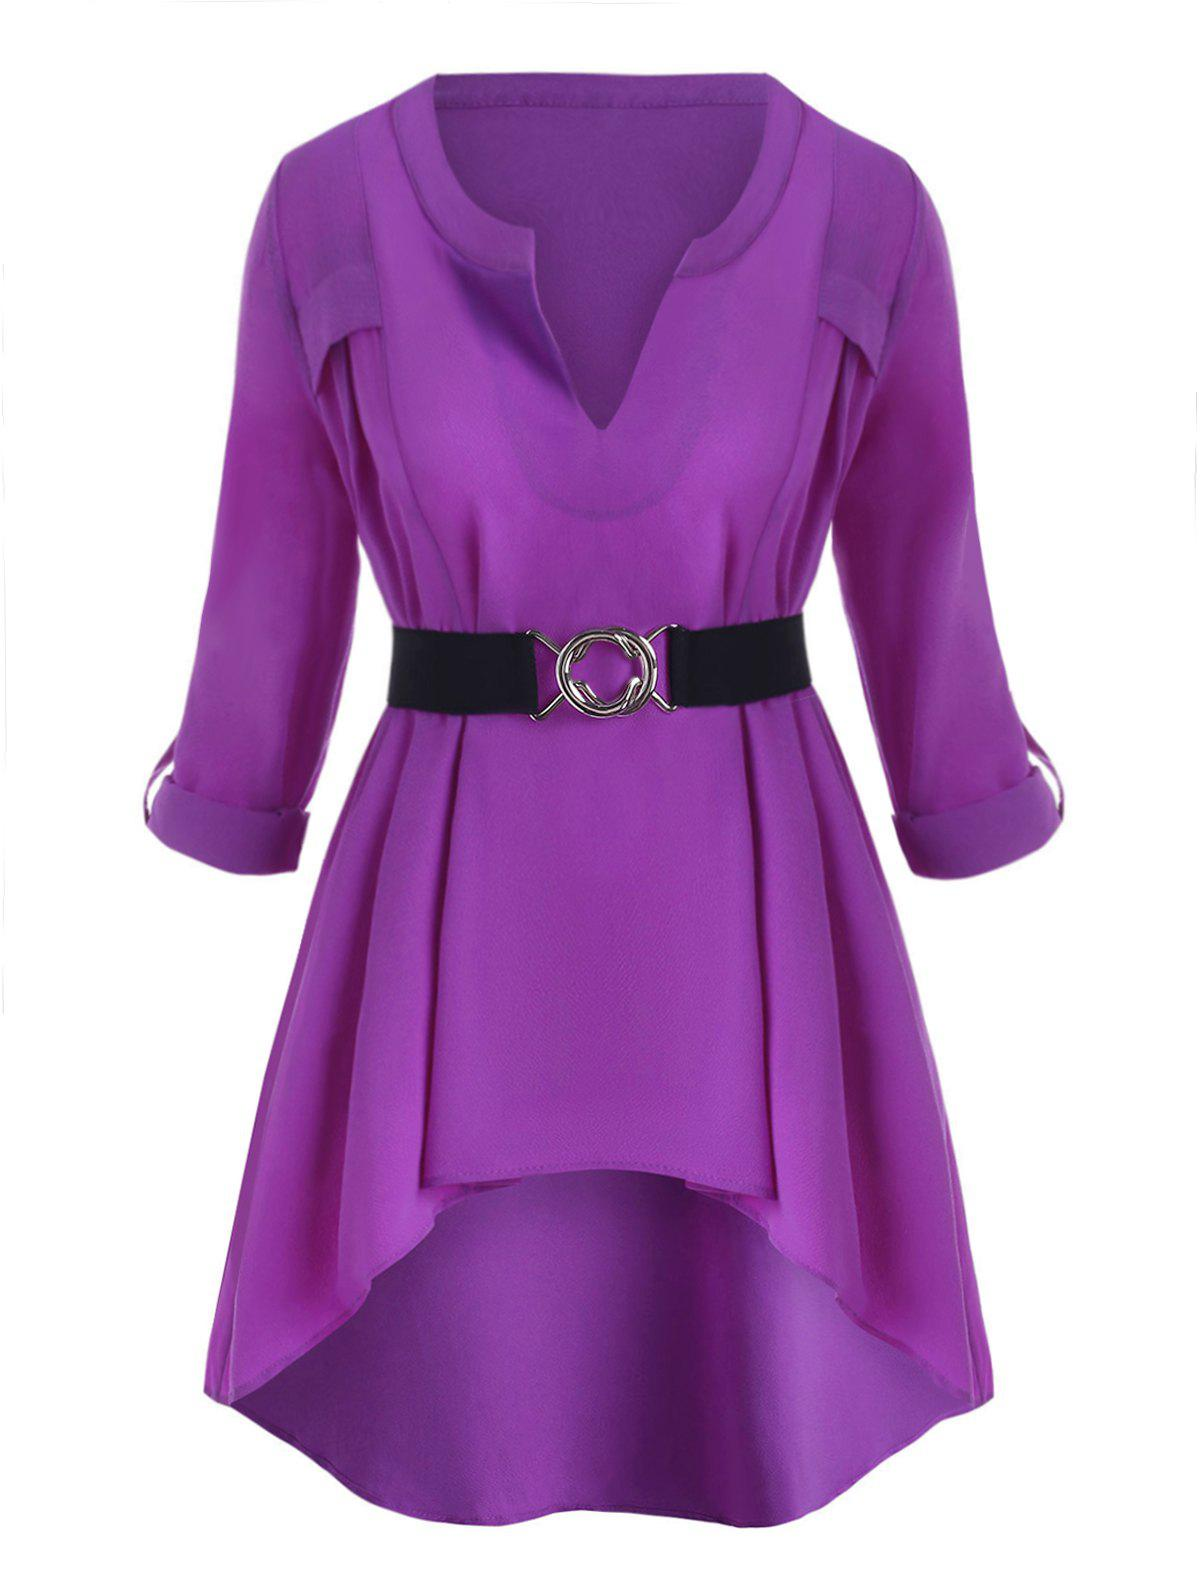 Plus Size Roll Up Sleeve High Low Top - PURPLE 5X